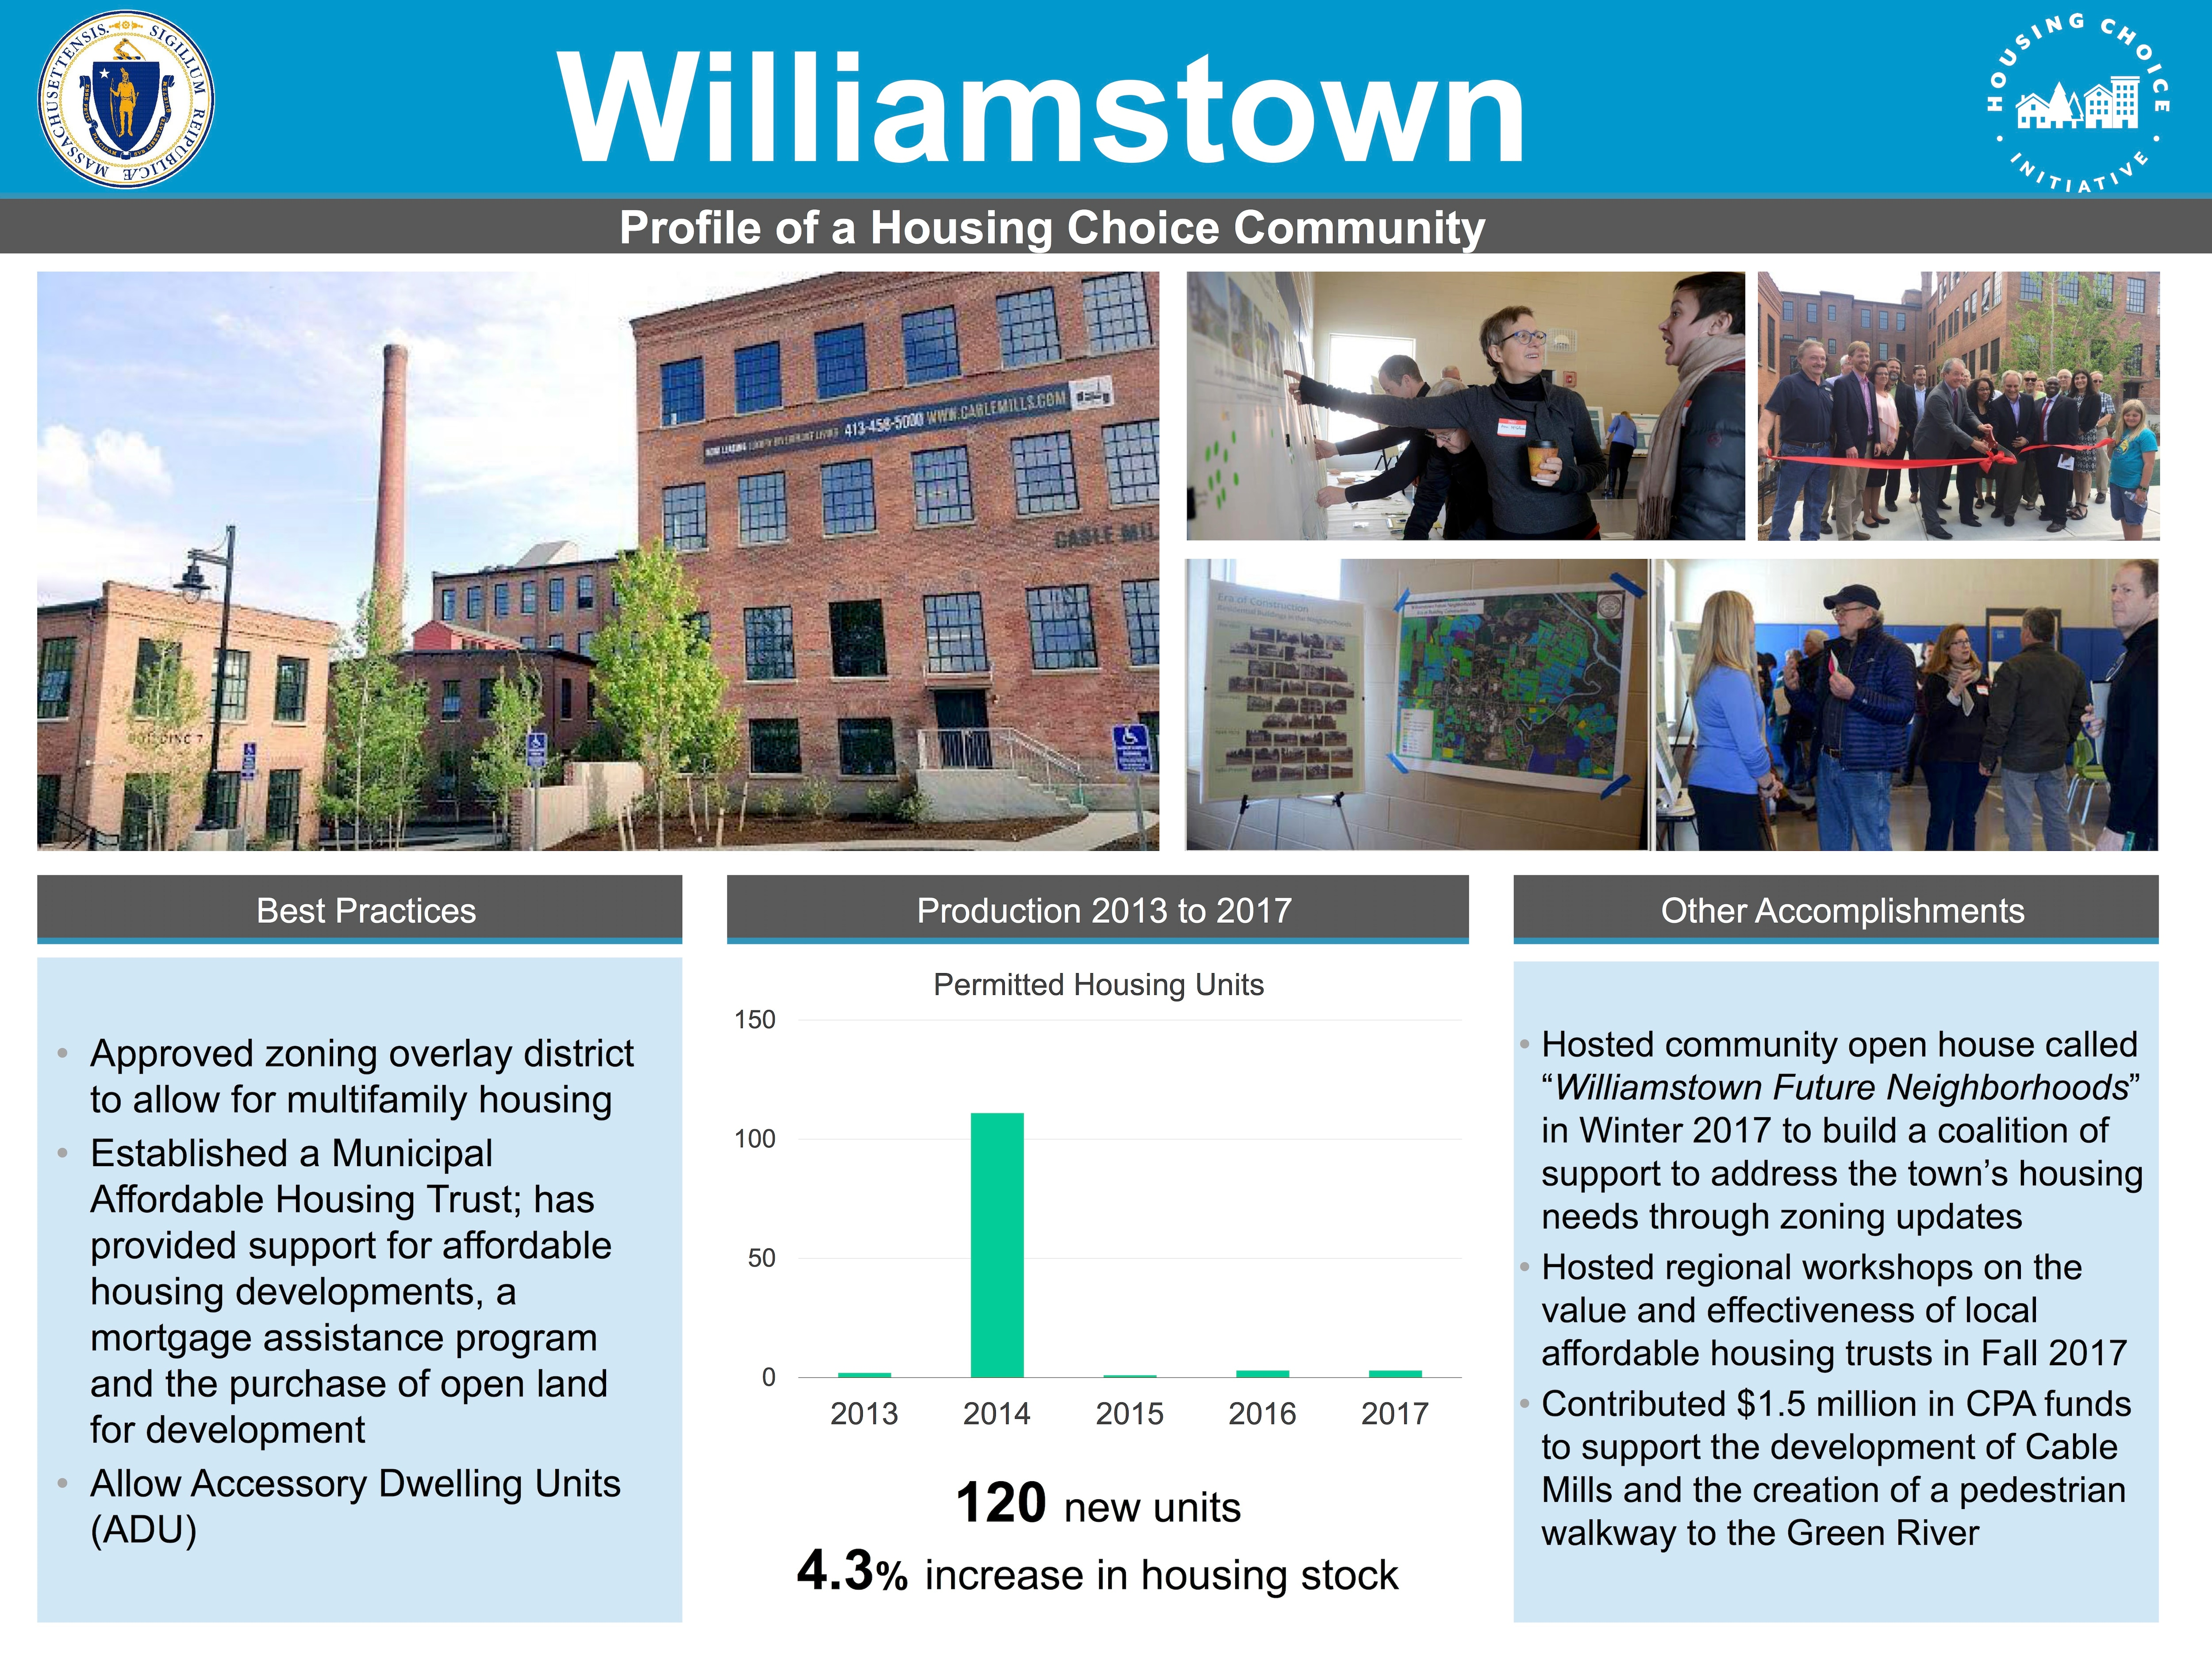 Profile of a Housing Choice Community - Williamstown